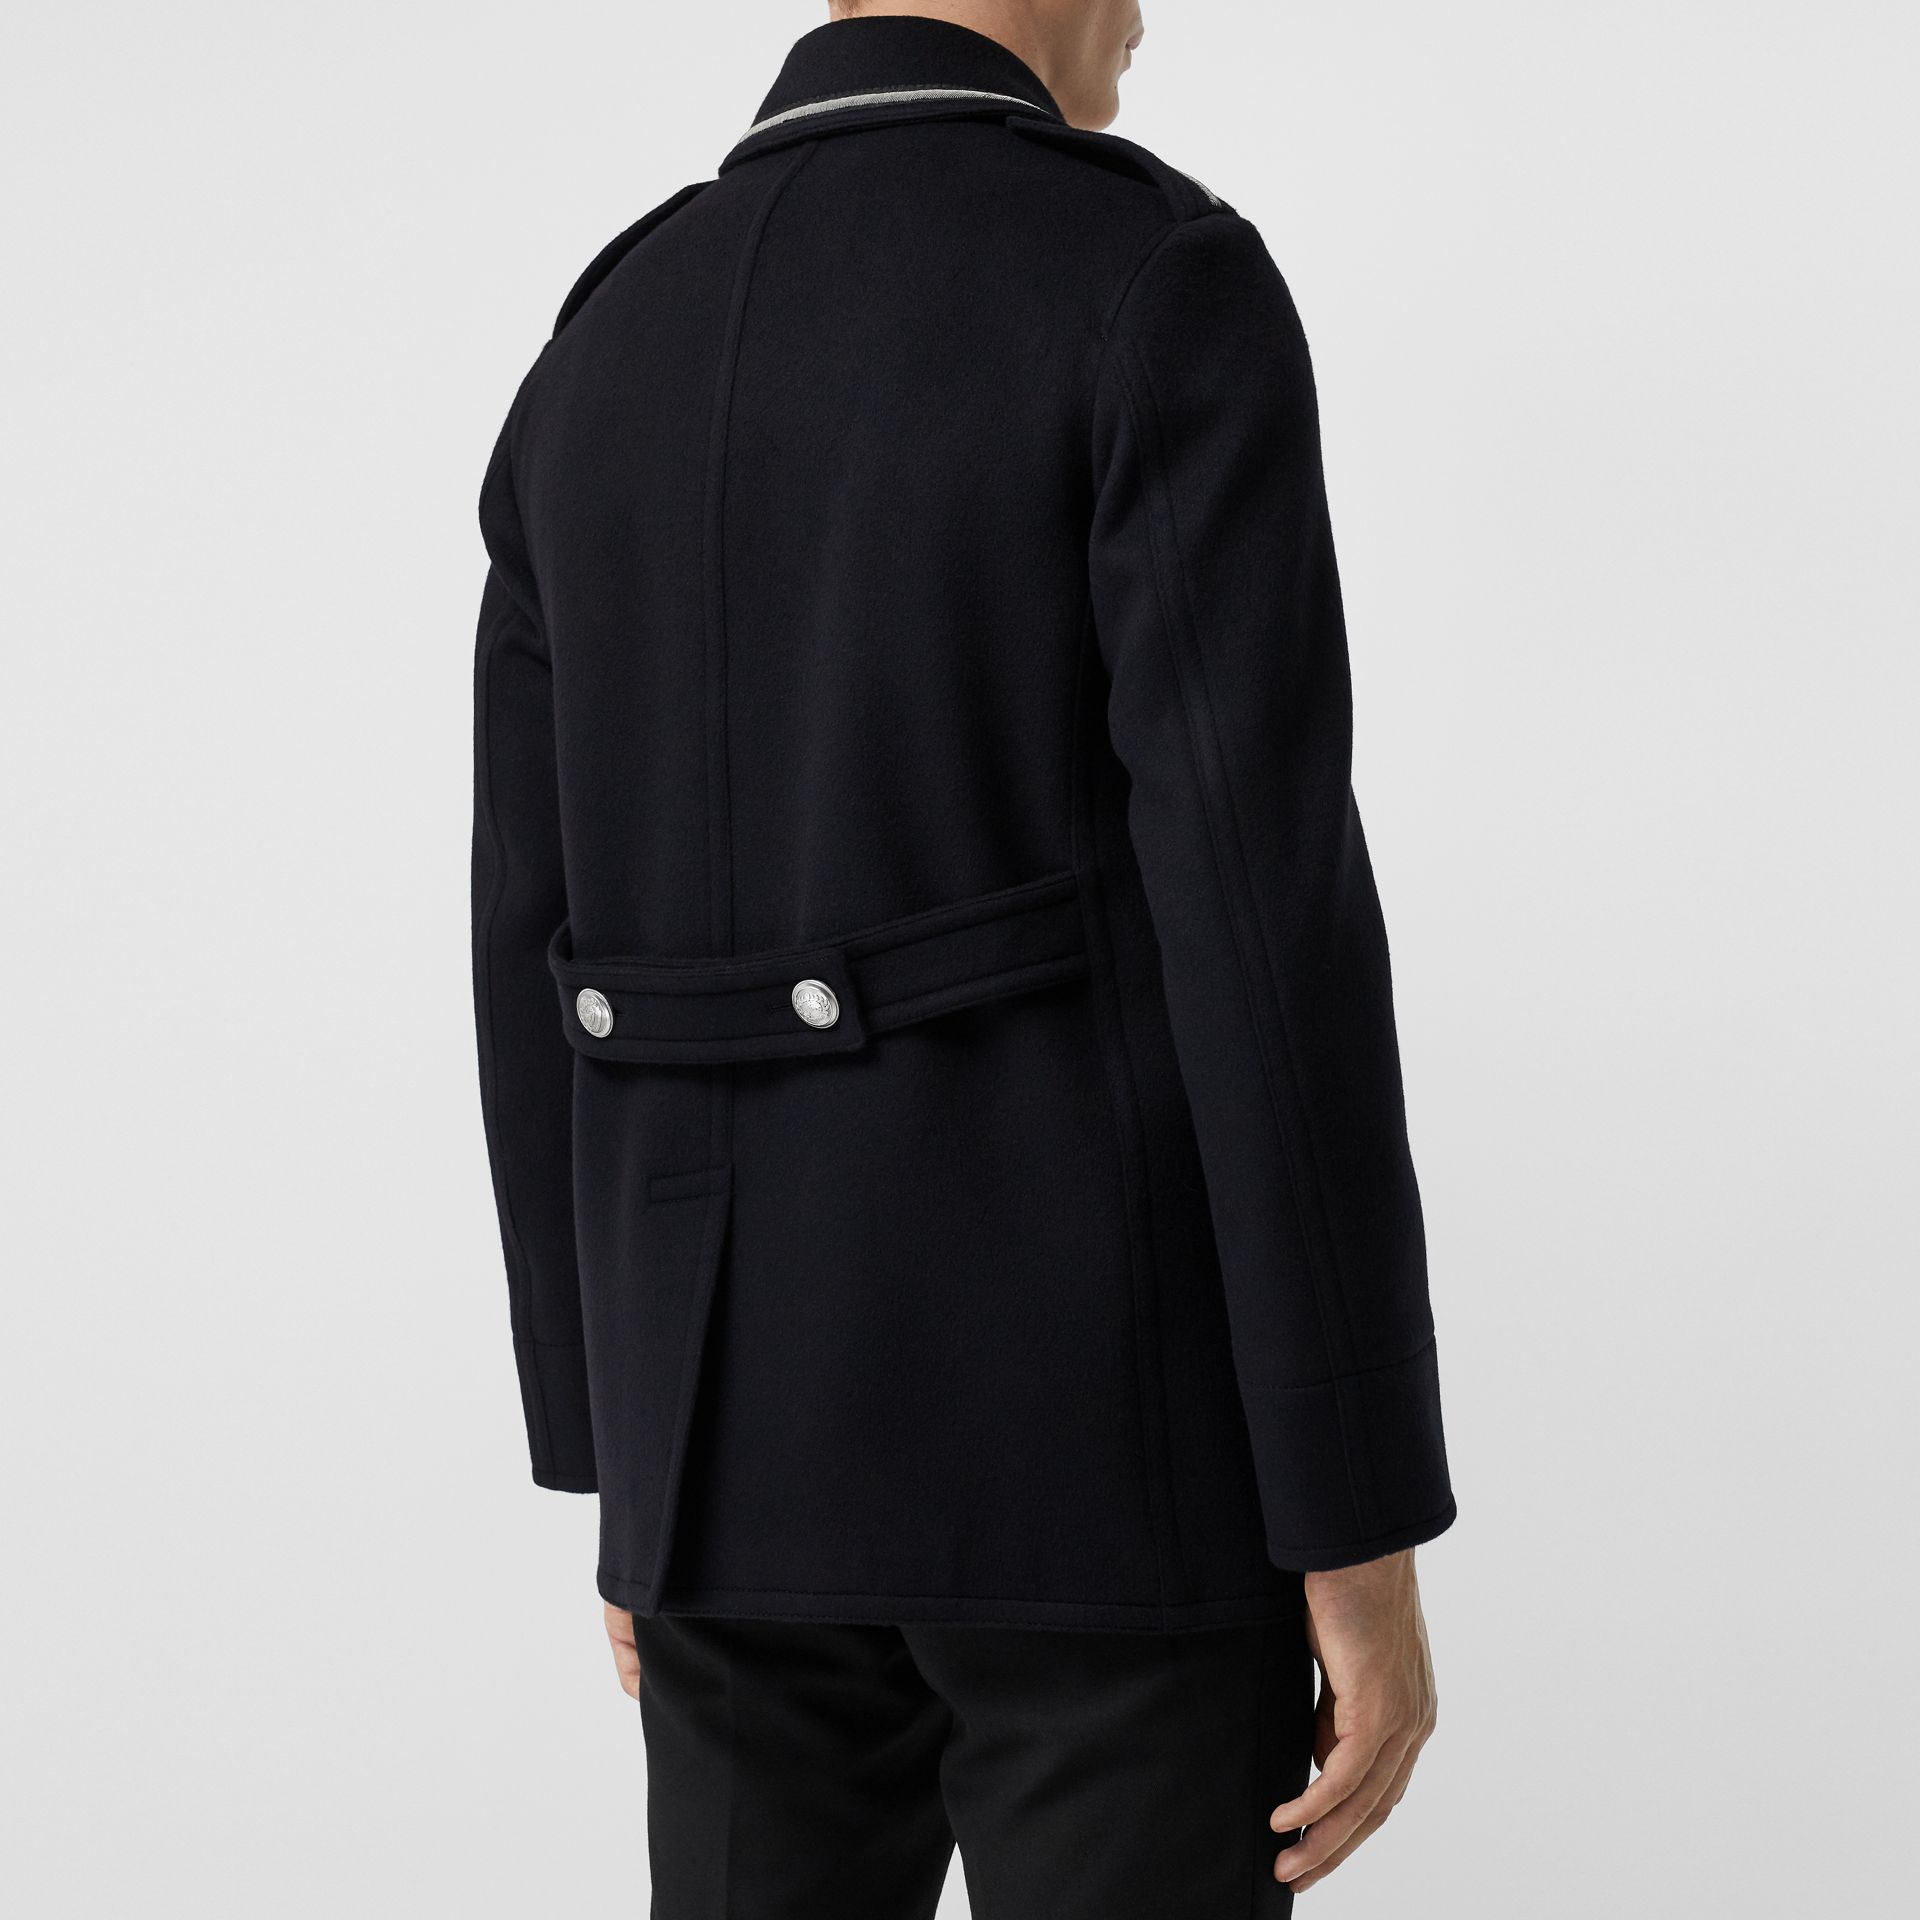 Bullion Wool Cashmere Pea Coat in Dark Navy - Men | Burberry - gallery image 2